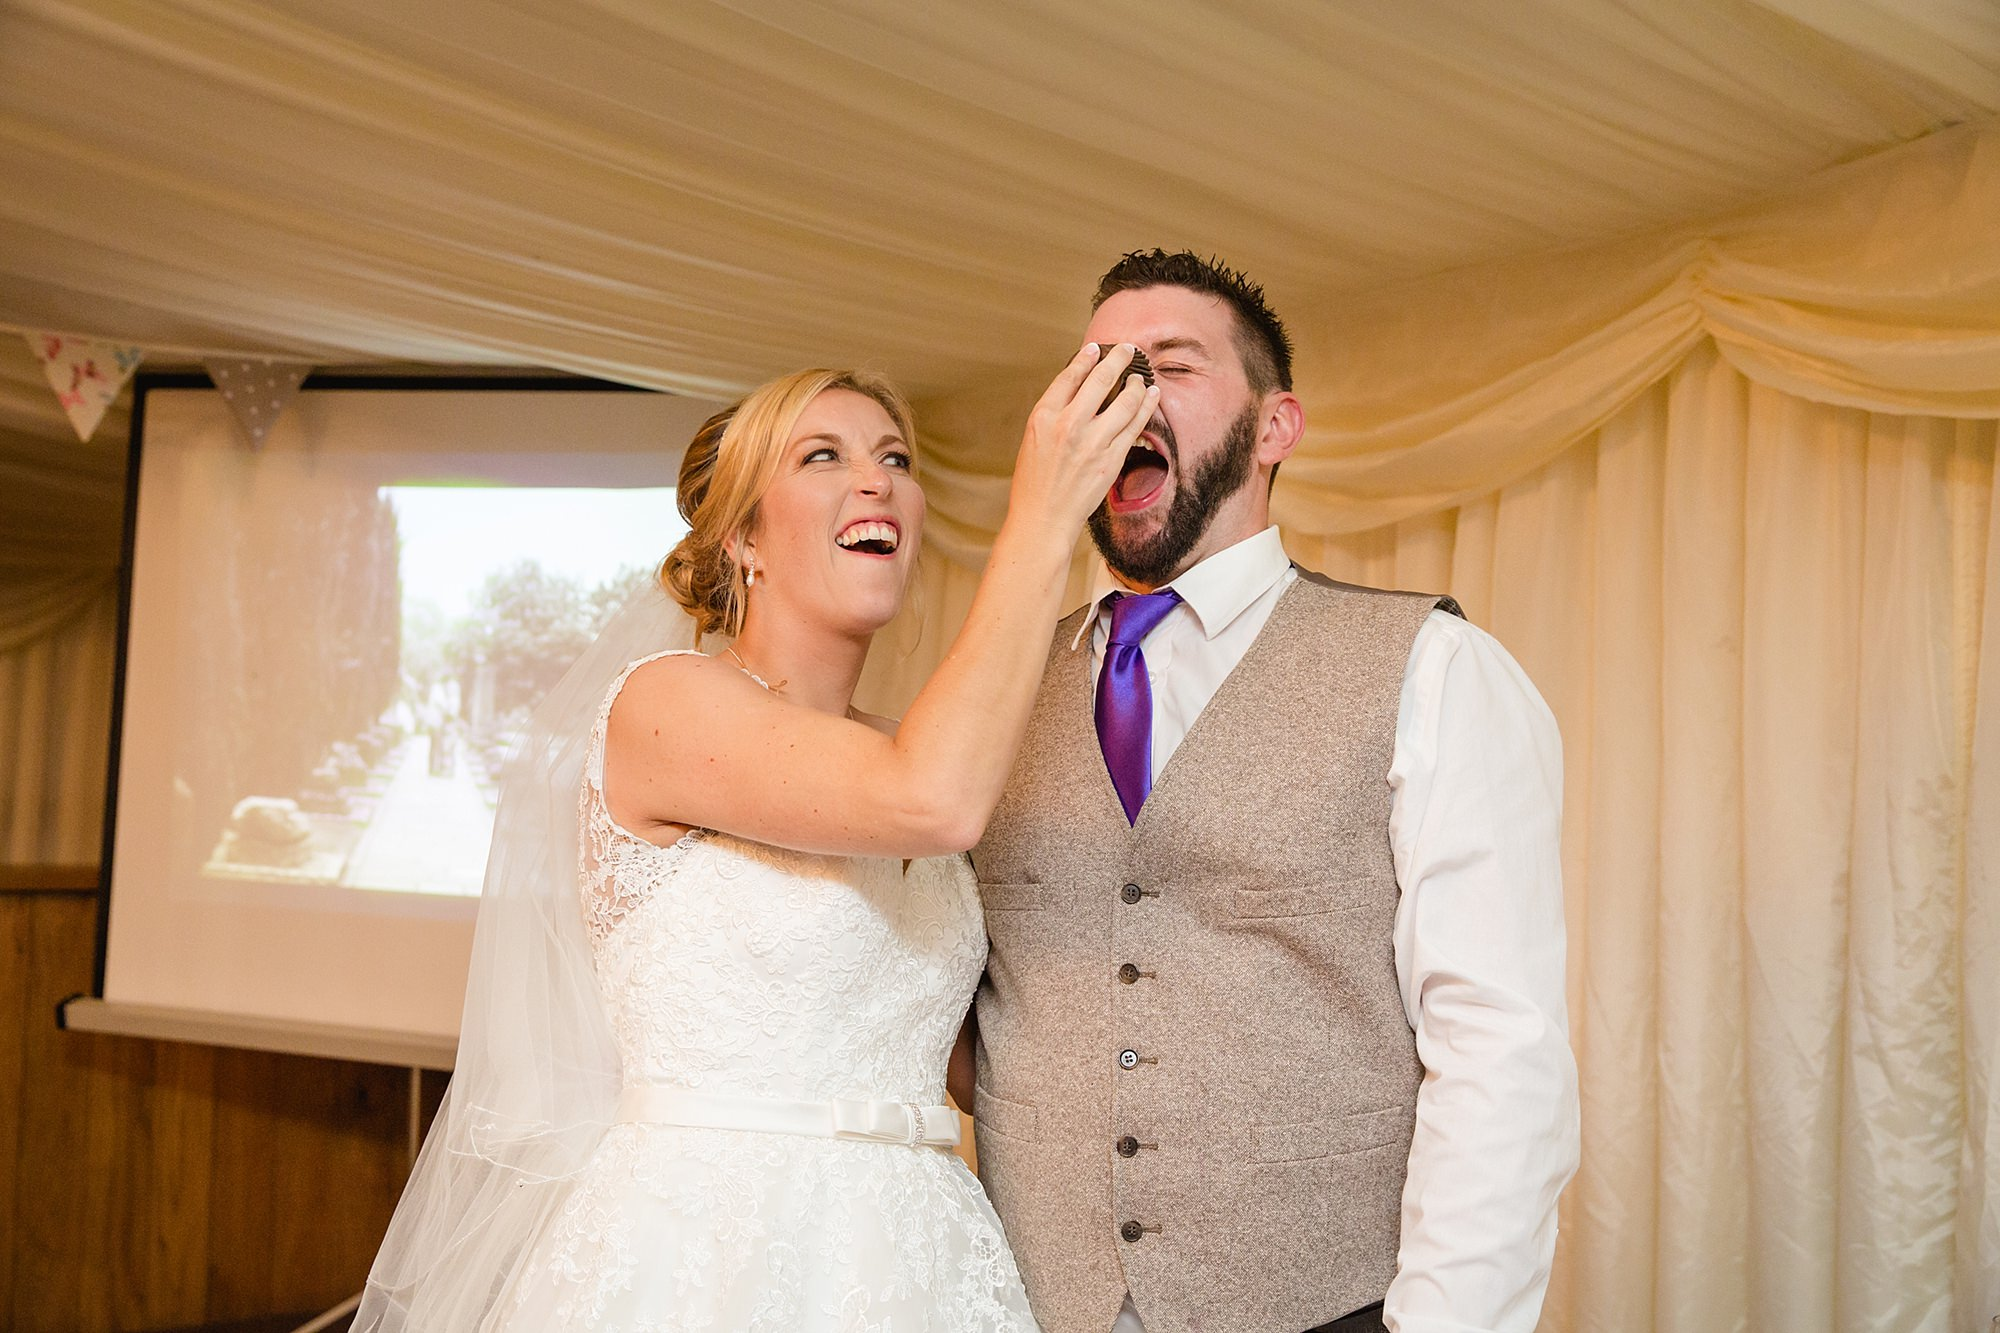 A fun wedding portrait of bride smashing cake in the groom's face